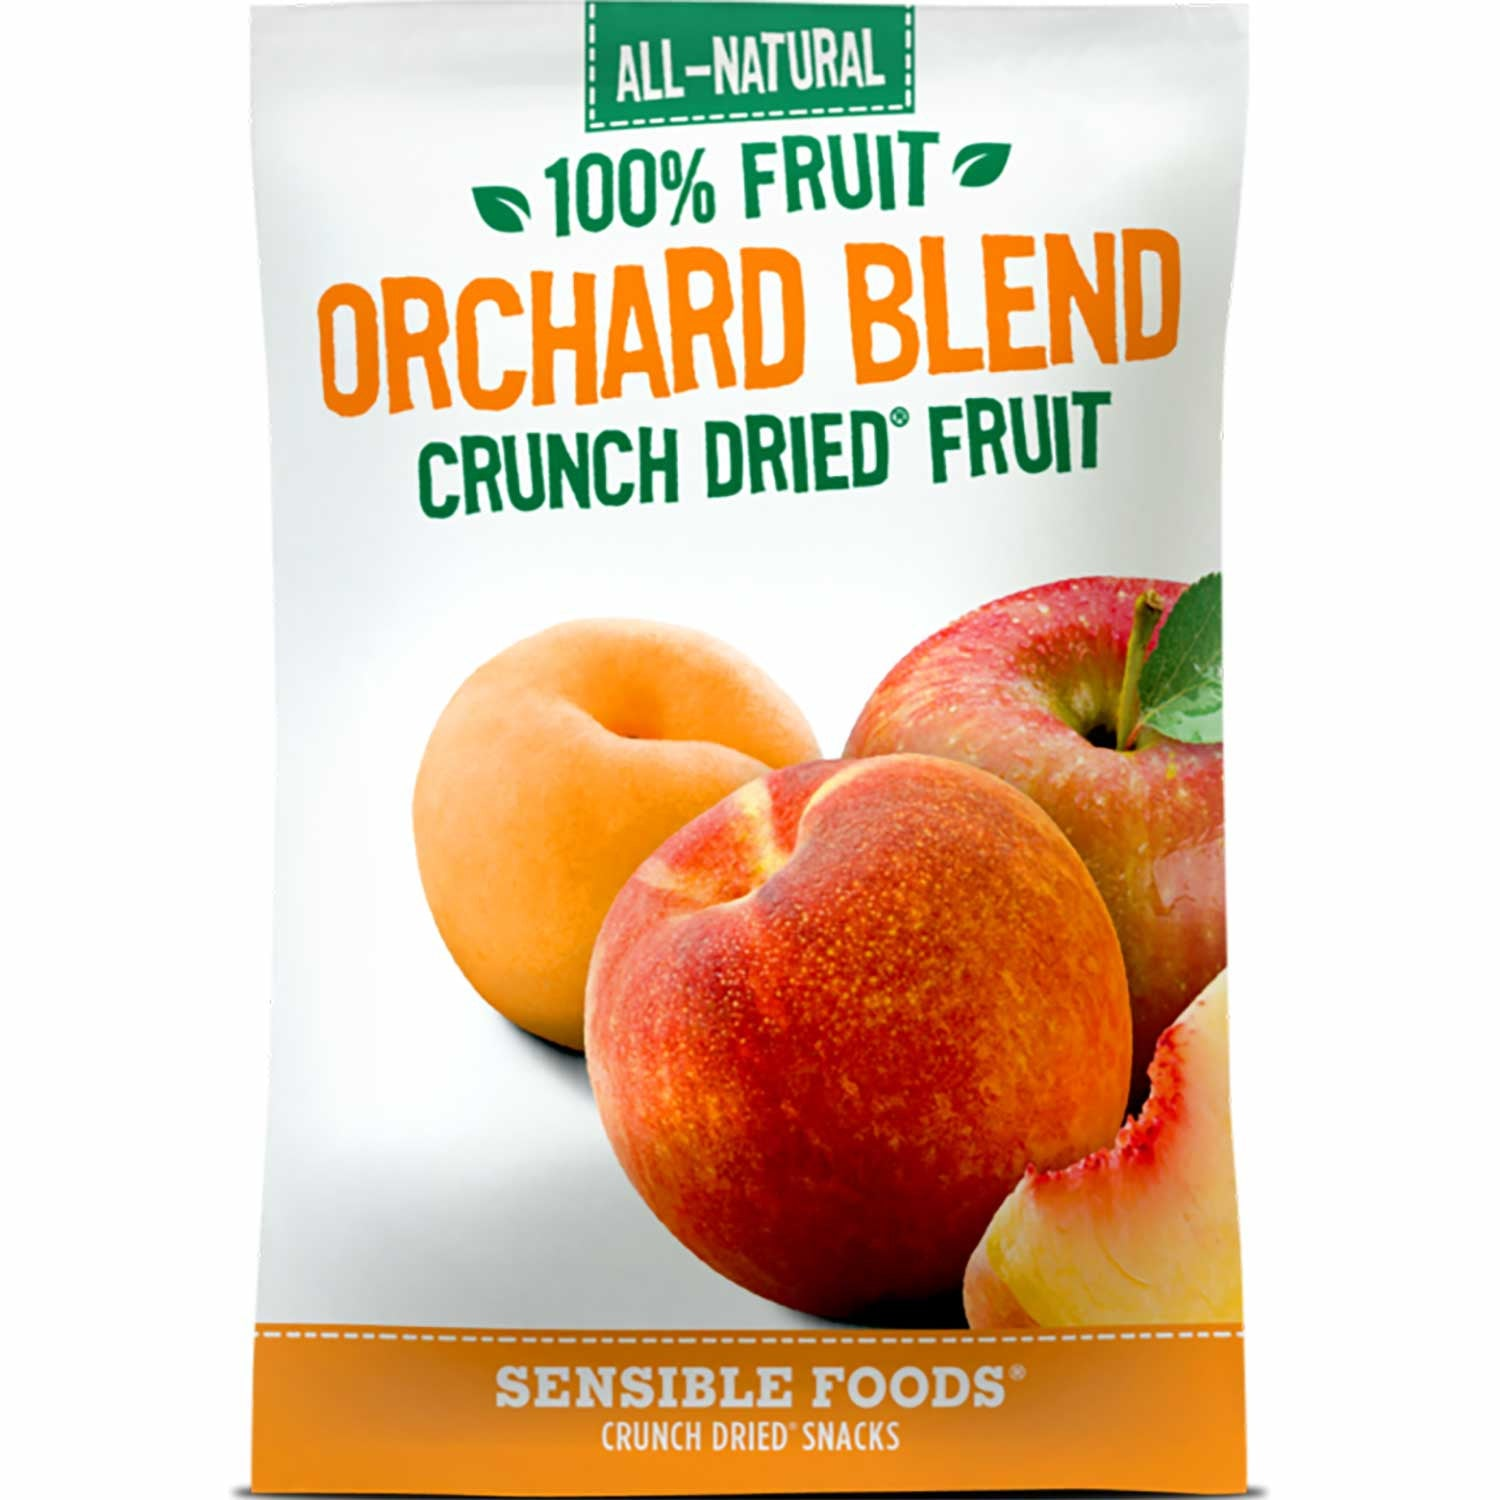 Sensible Foods All-Natural 100% Fruit Orchard Blend Crunch Dried Fruit, 37g.-NaturesWisdom